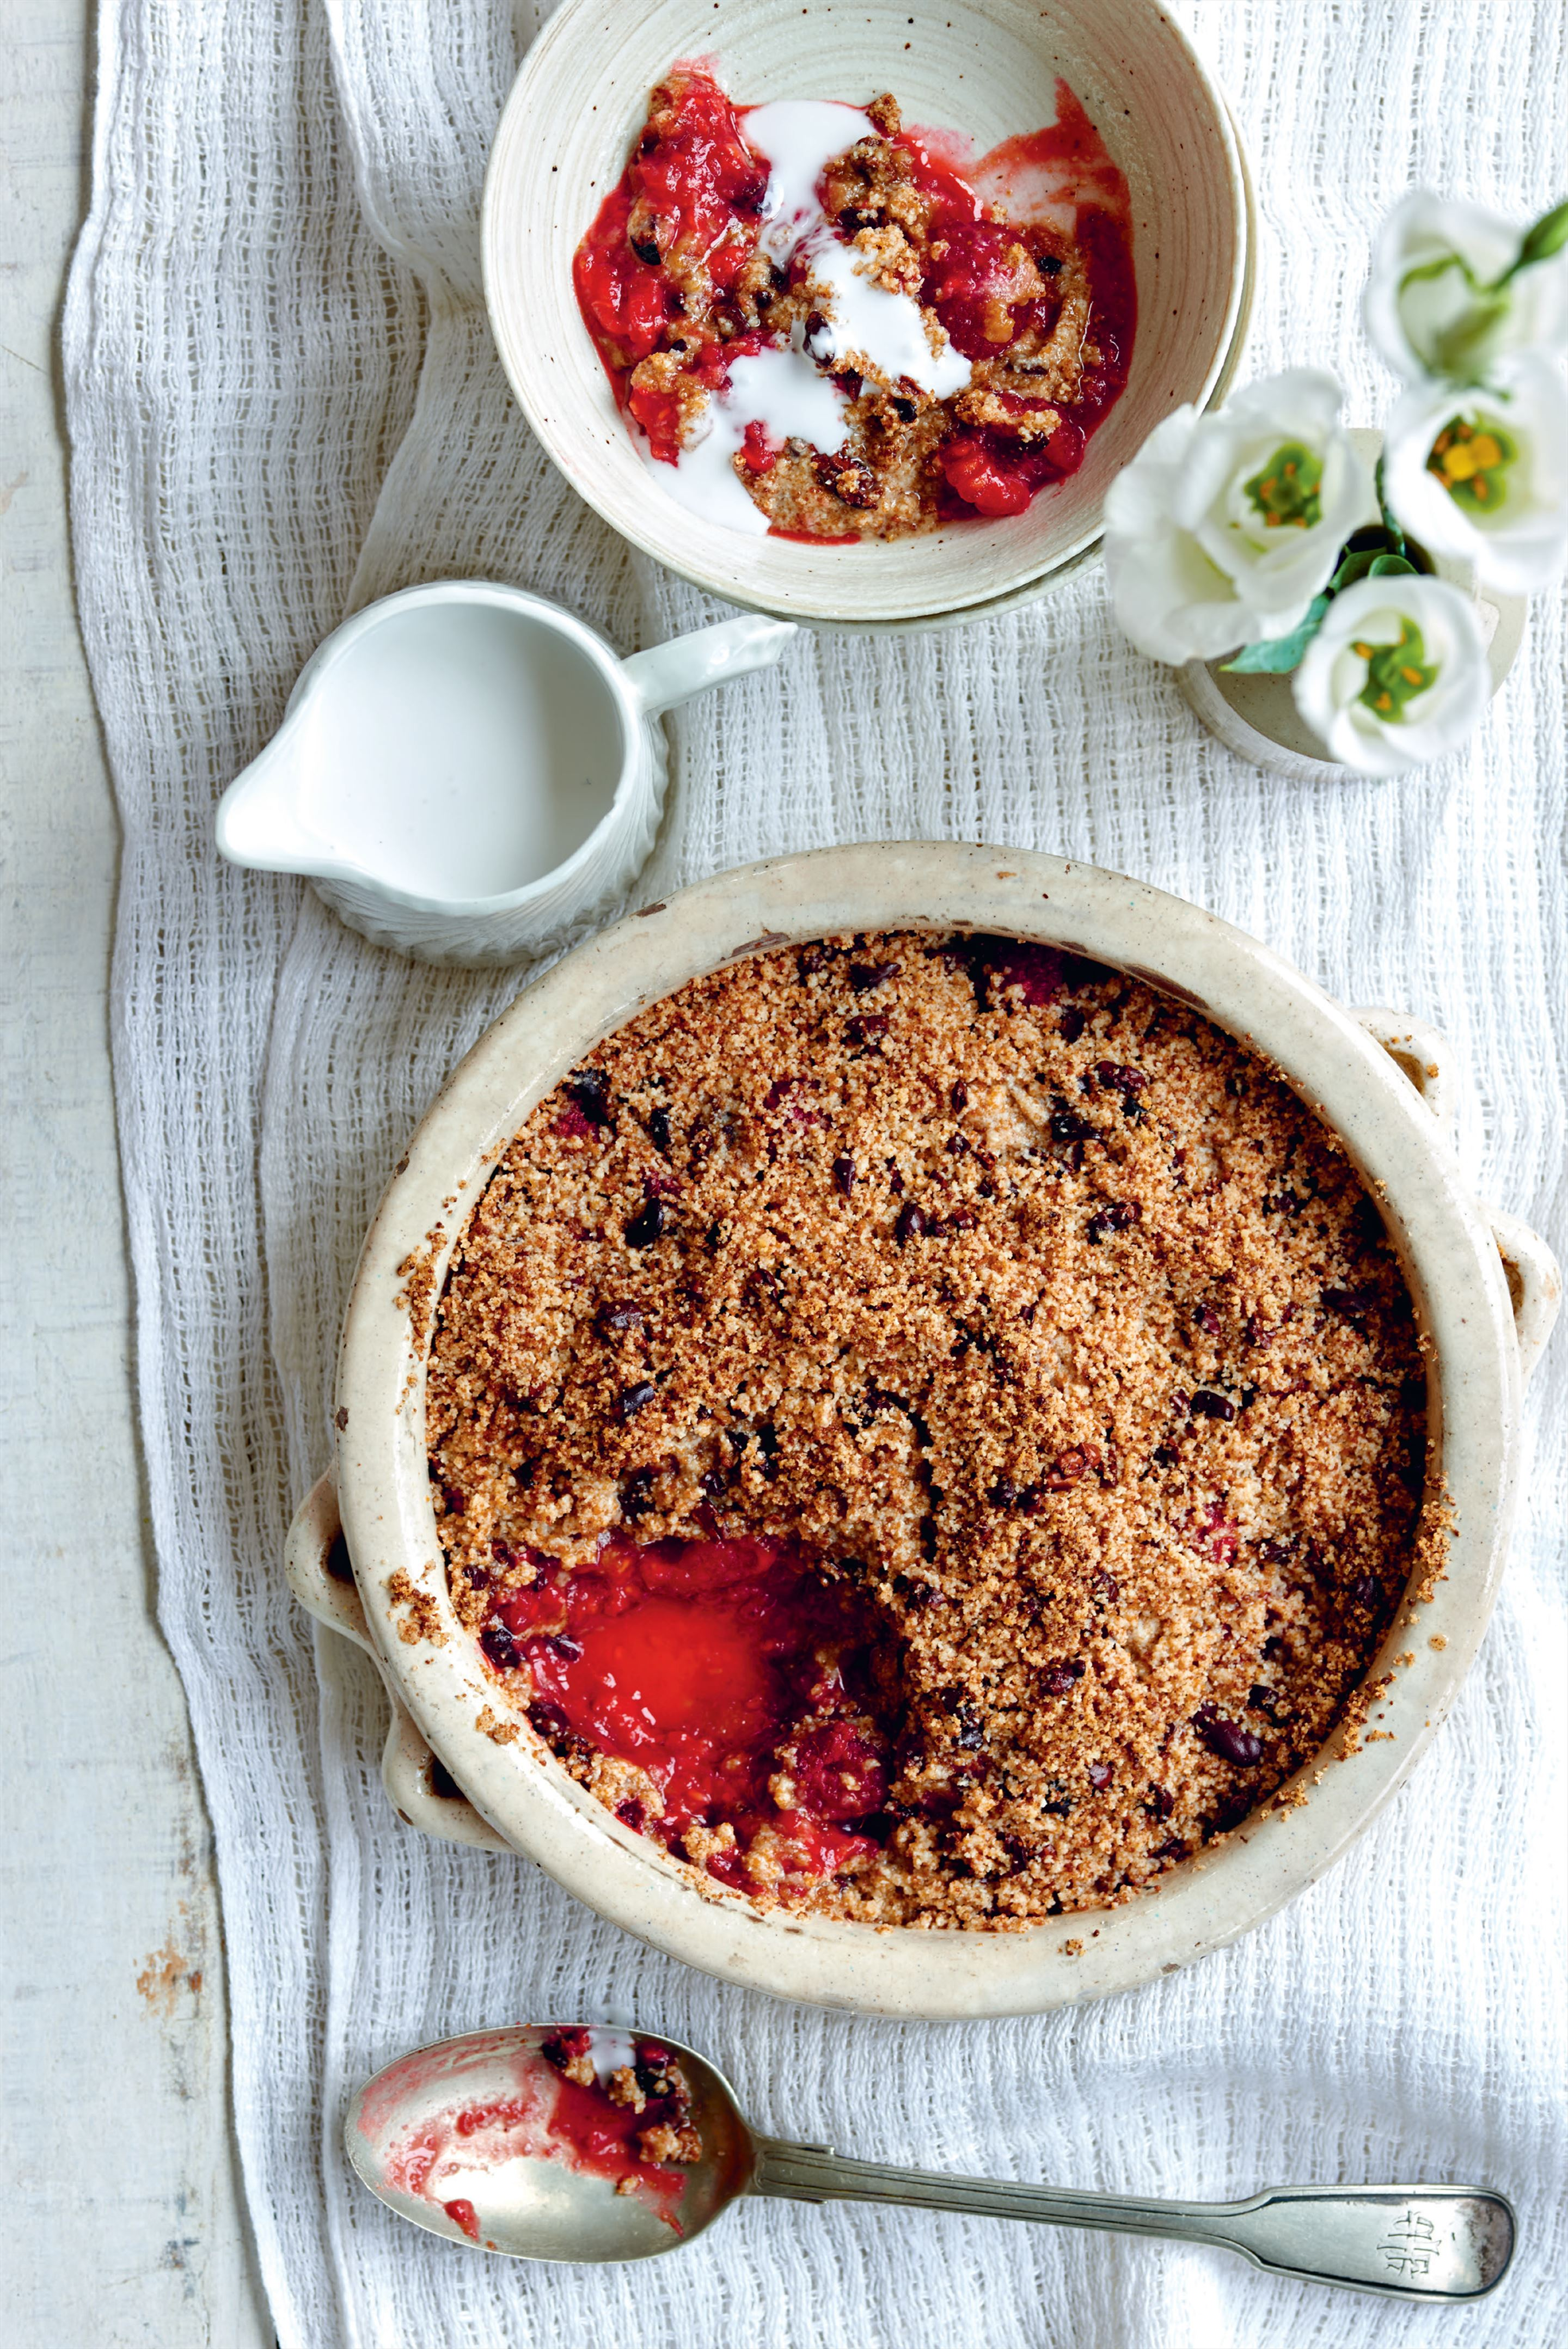 Raspberry, cacao nib and coconut oil crumble